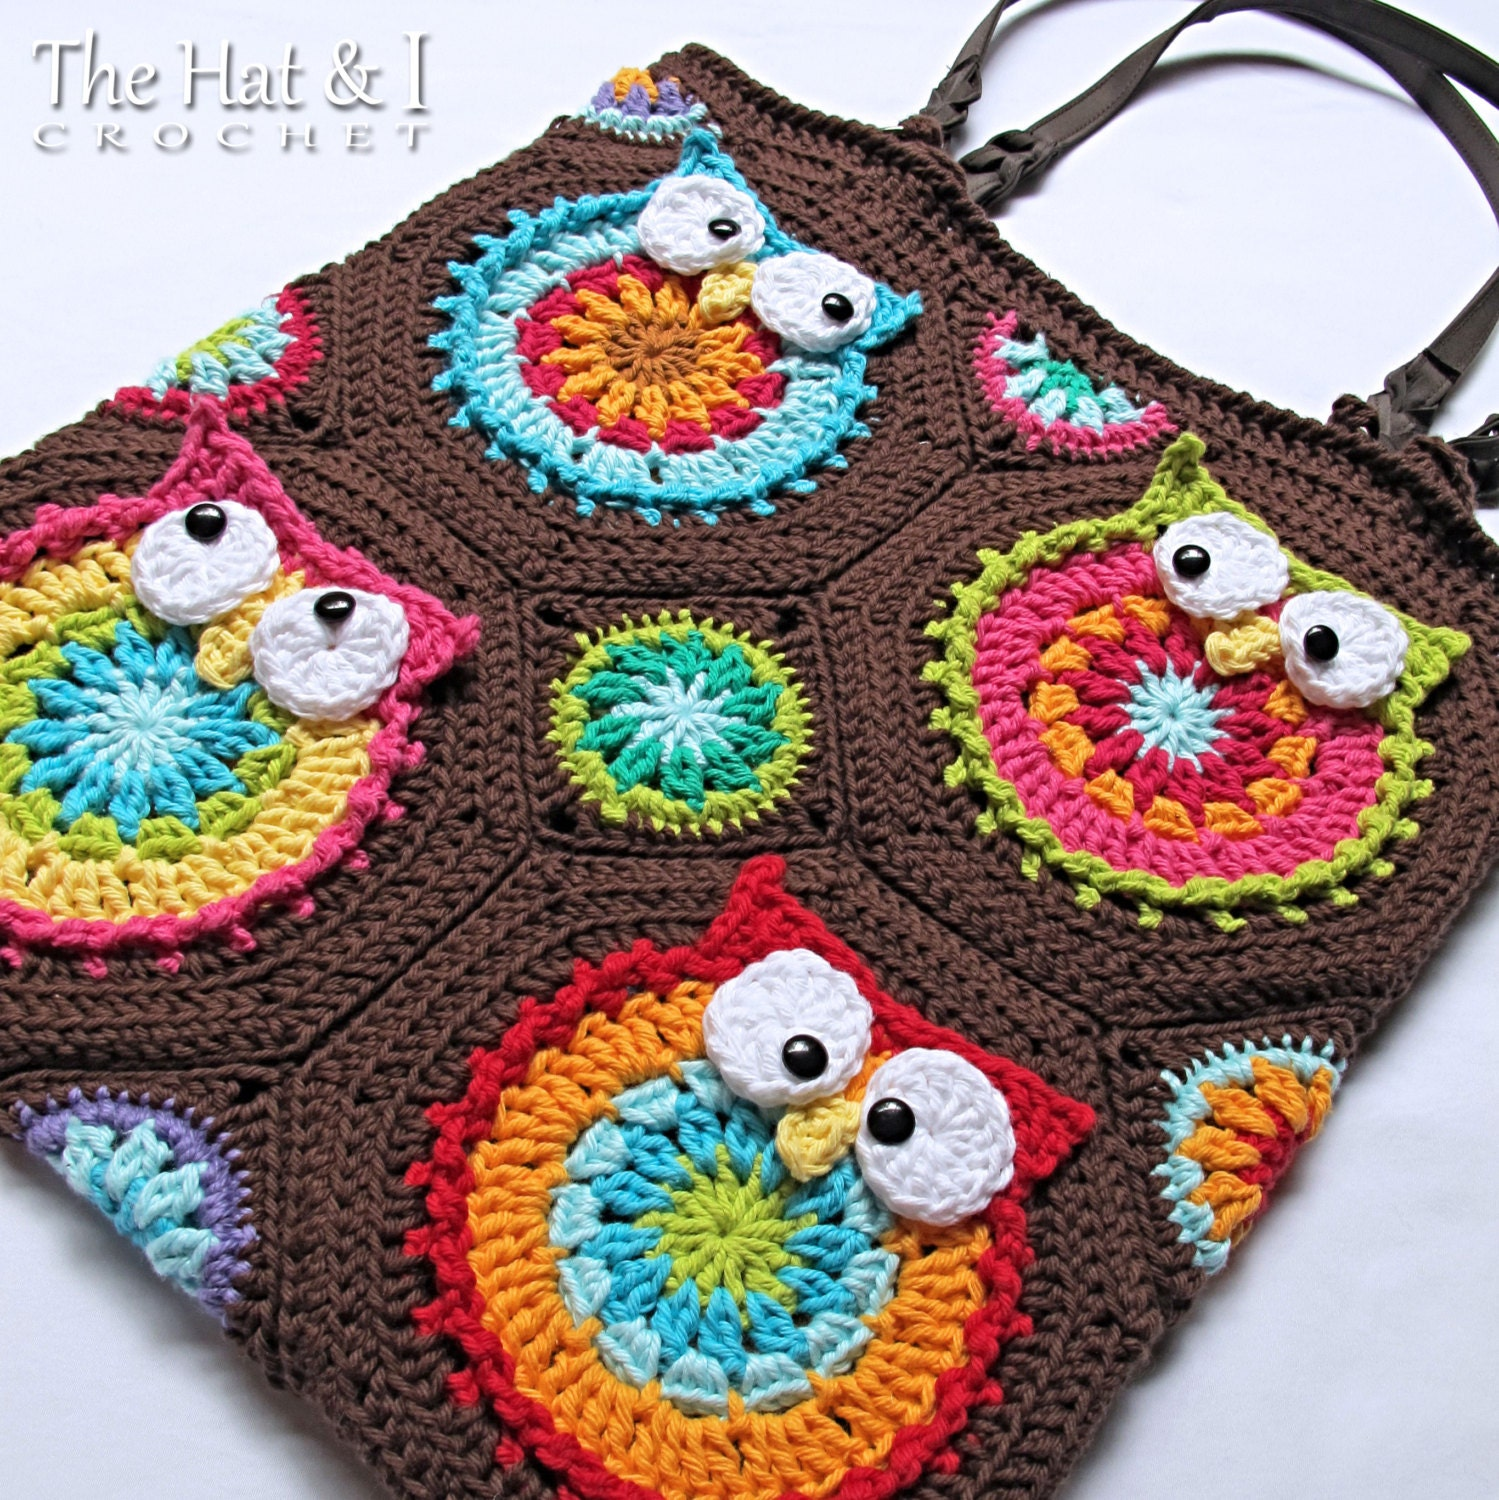 Crochet Bag Making : CROCHET PATTERN Owl Toteem a colorful crochet owl by TheHatandI